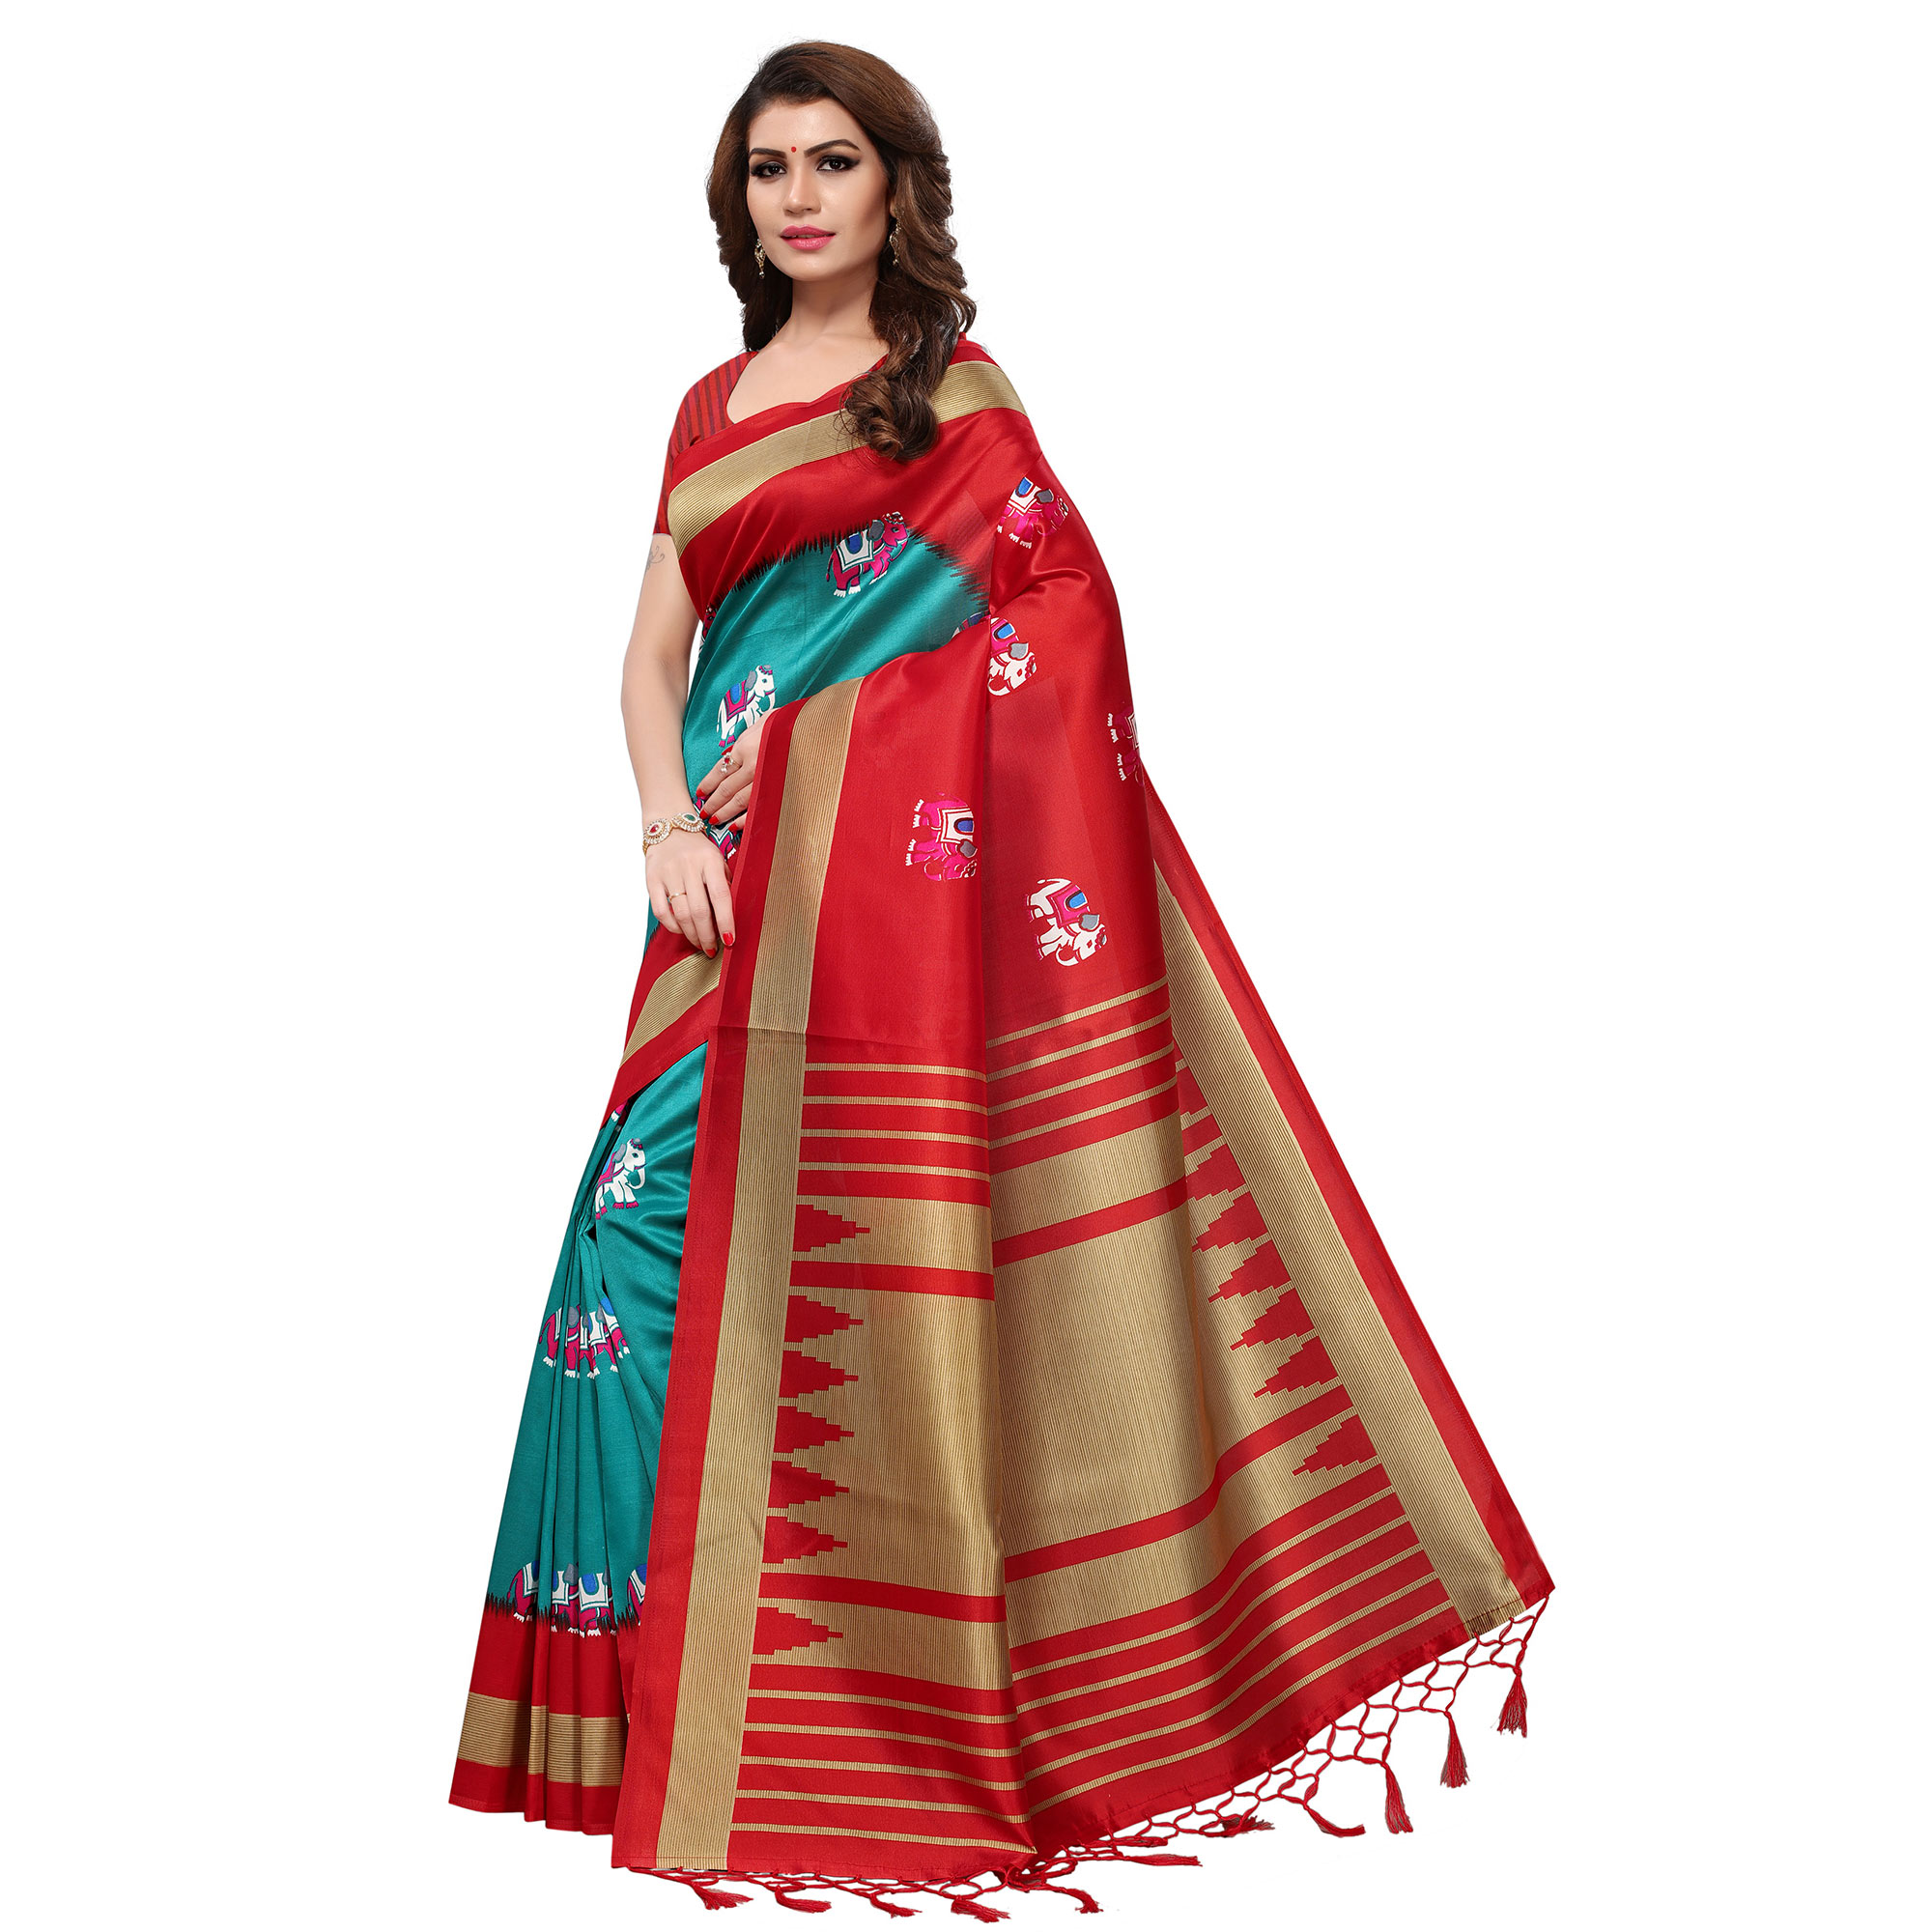 Marvellous Teal Blue-Red Colored Festive Wear Printed Mysore Art Silk Saree